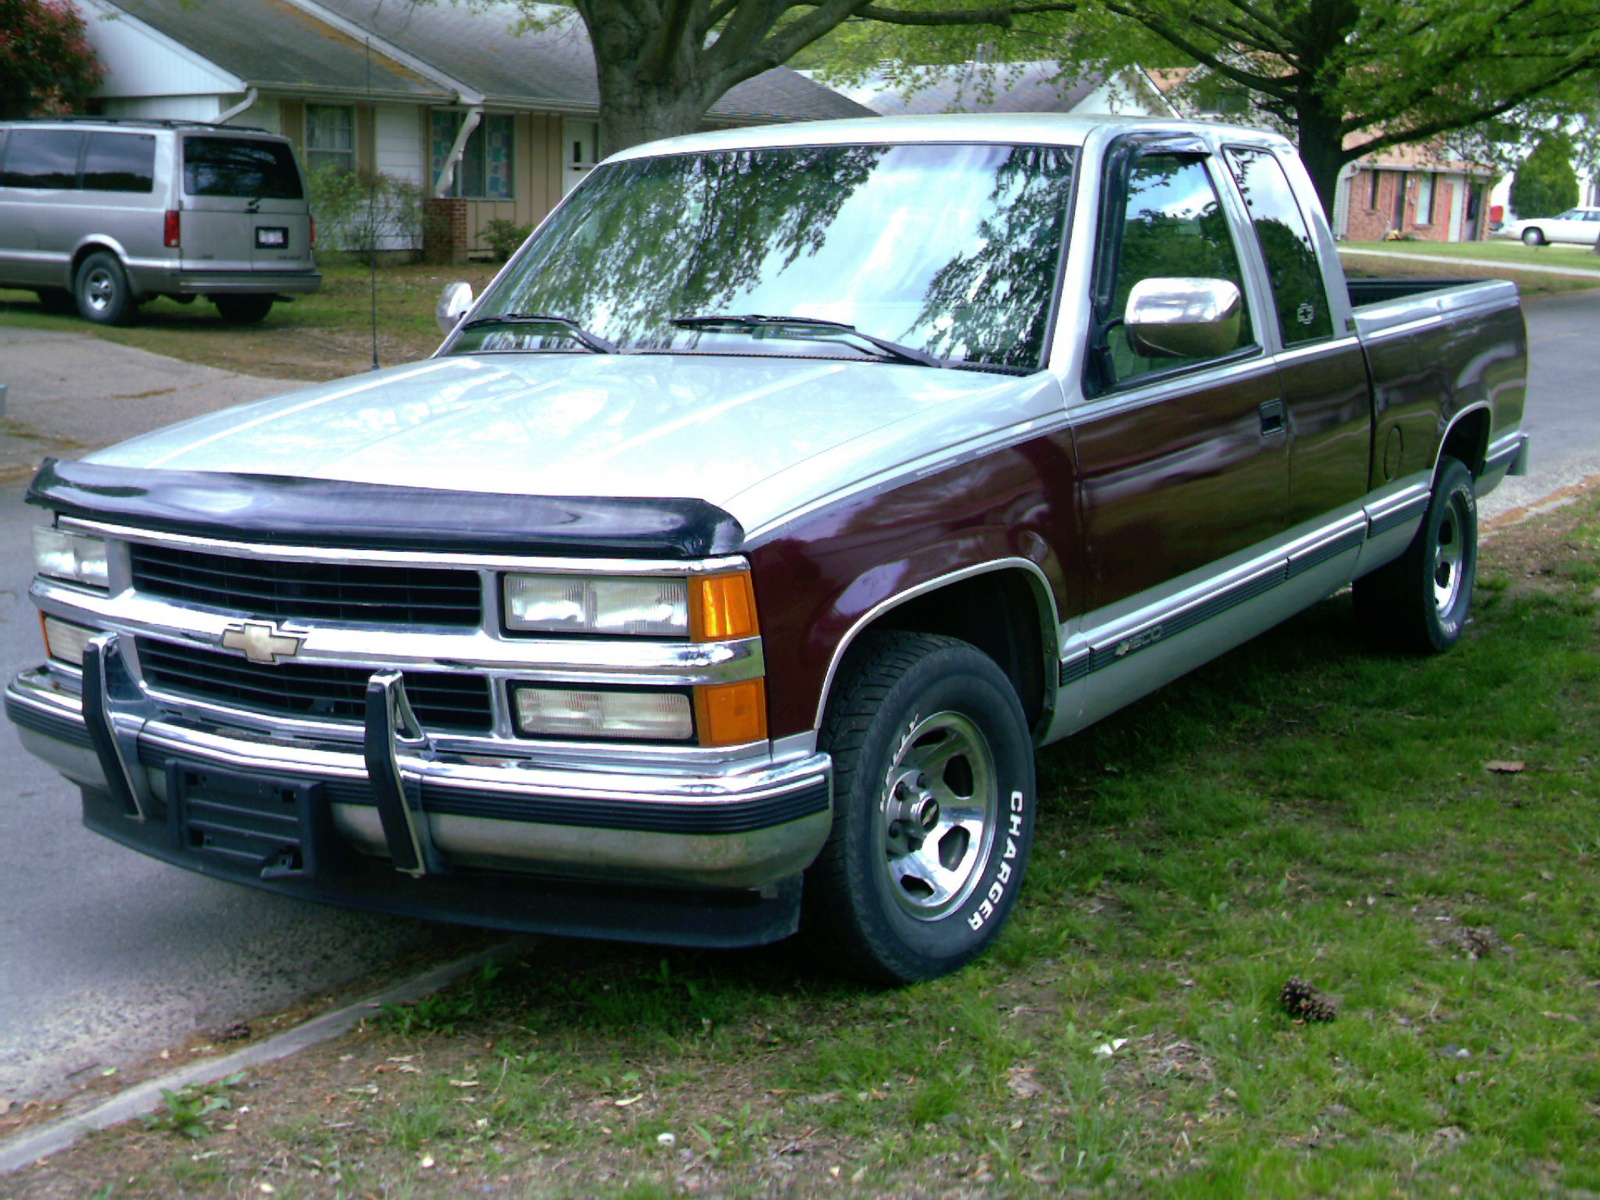 Chevrolet c-series photo - 4